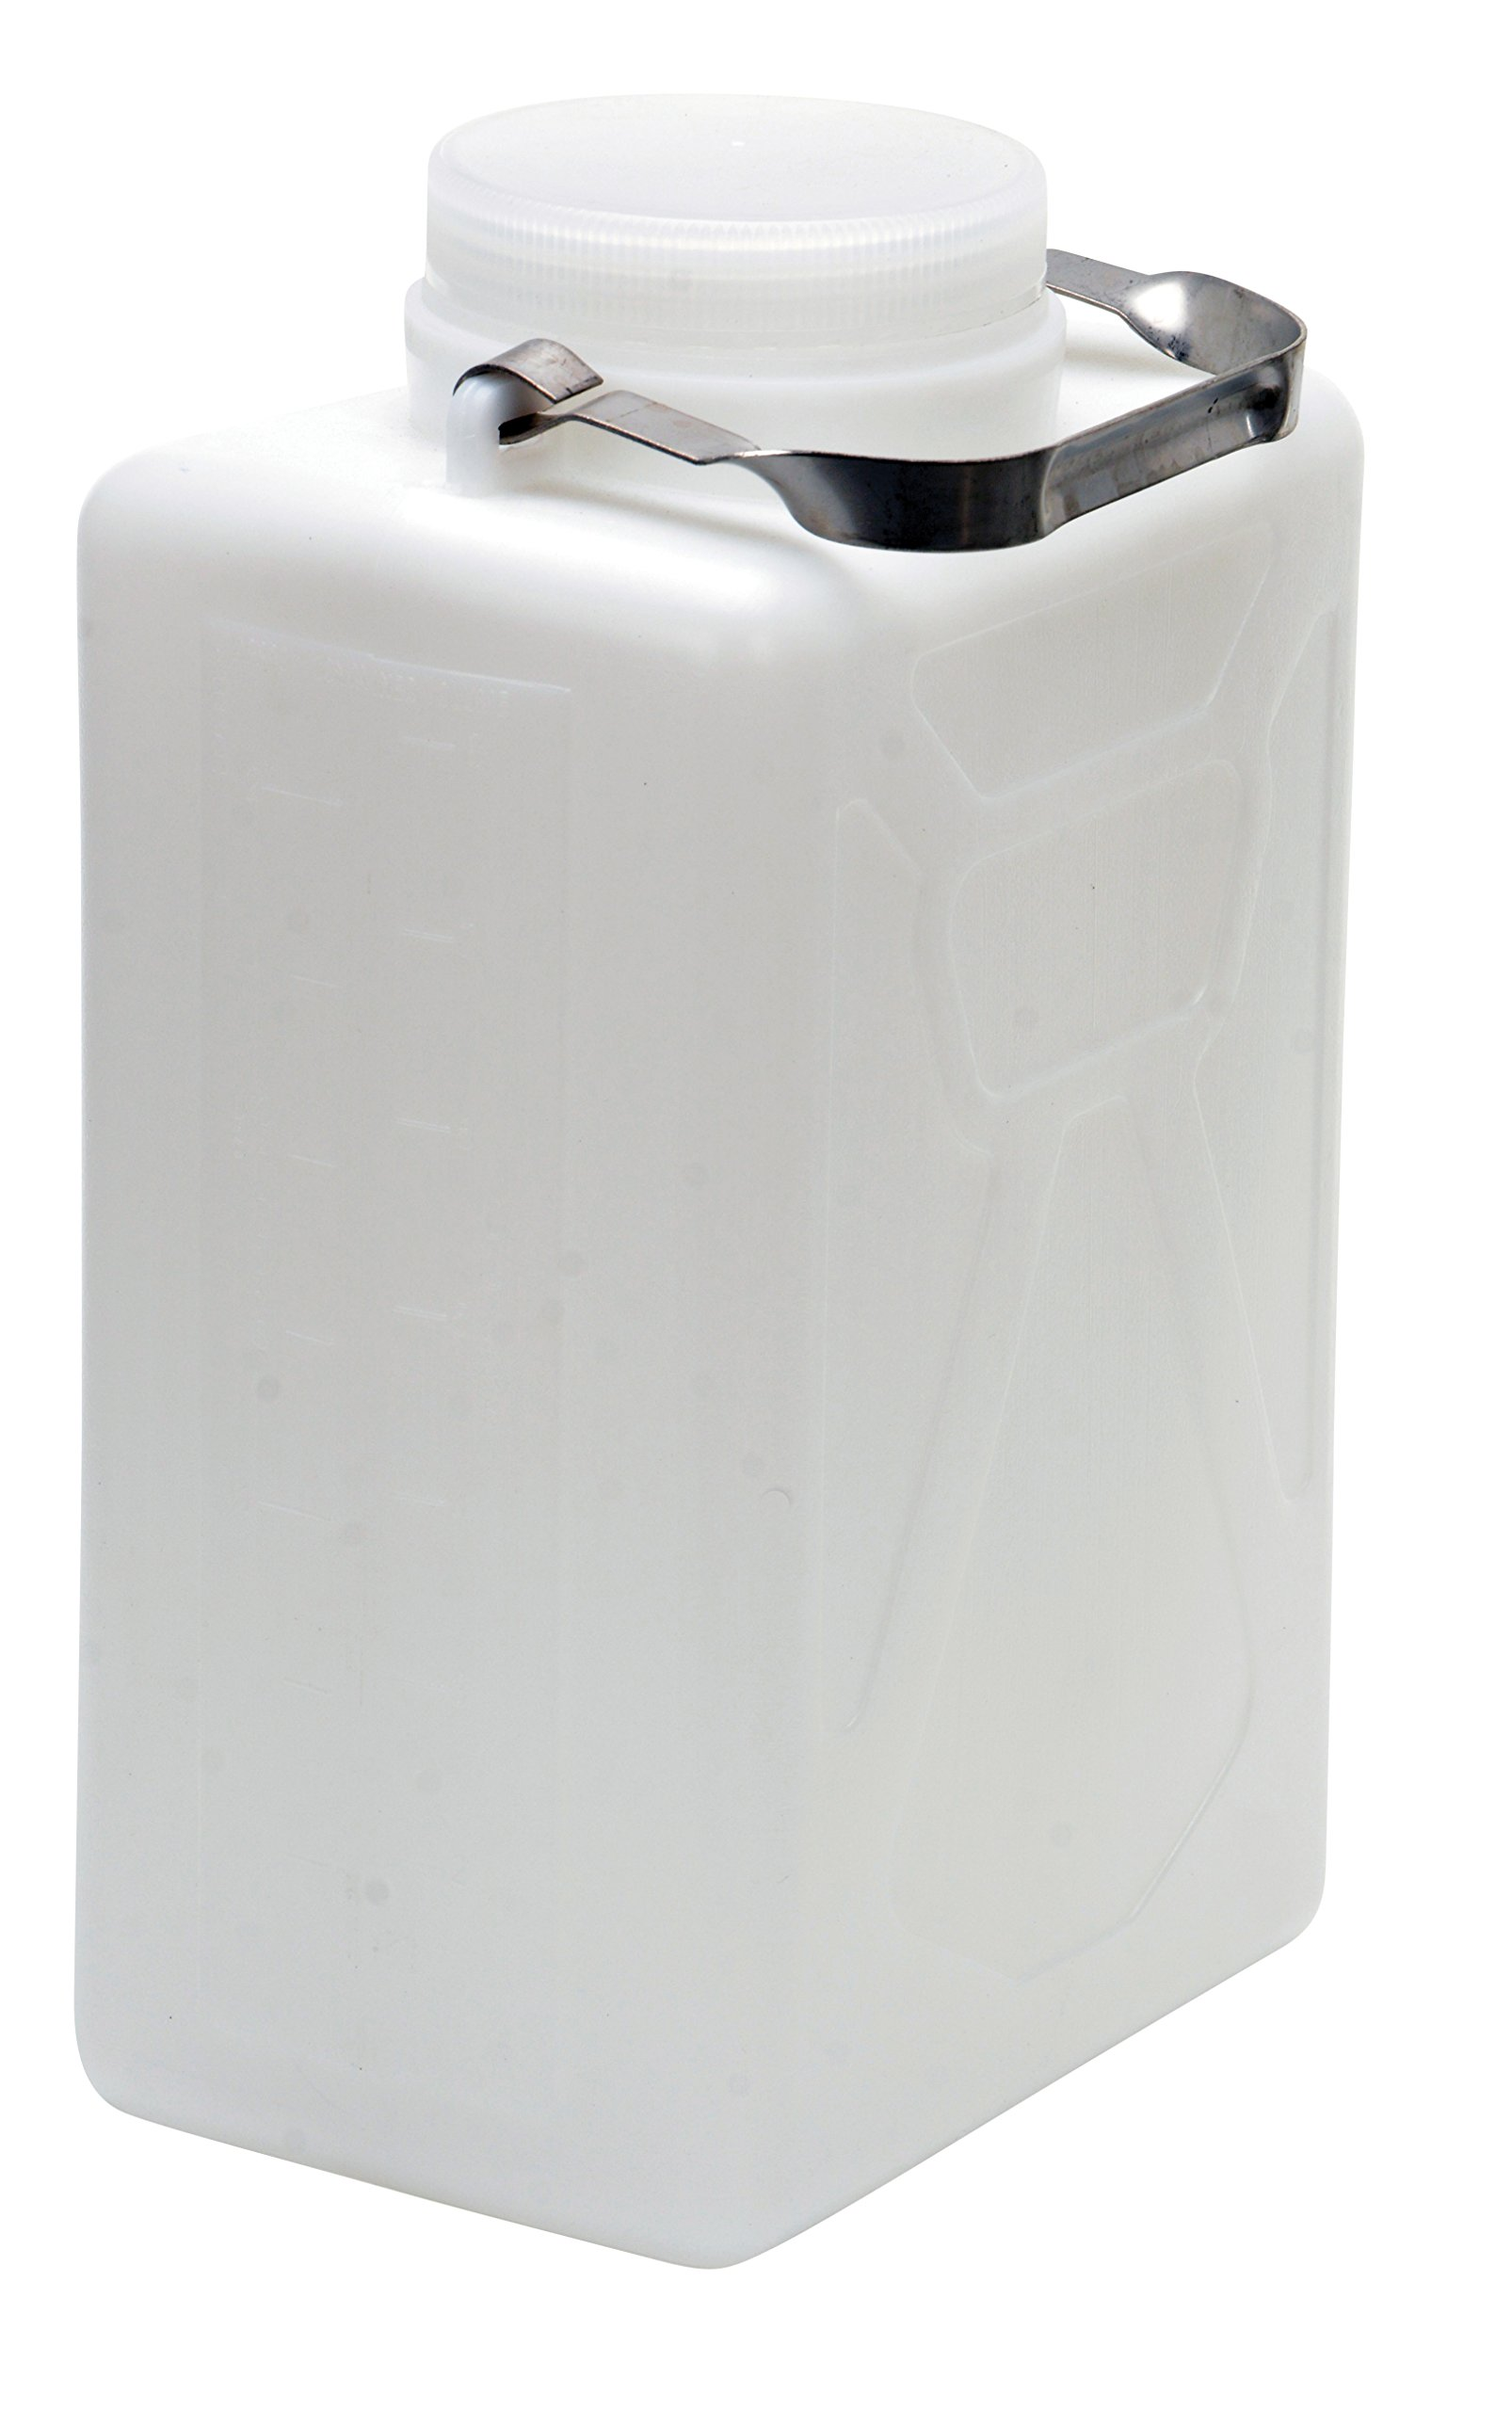 Vestil CARB-2-SSH Wide Mouth High Density Polyethylene (HDPE) Rectangular Carboy with Stainless Steel Handle, 2 Gallon Capacity, Natural